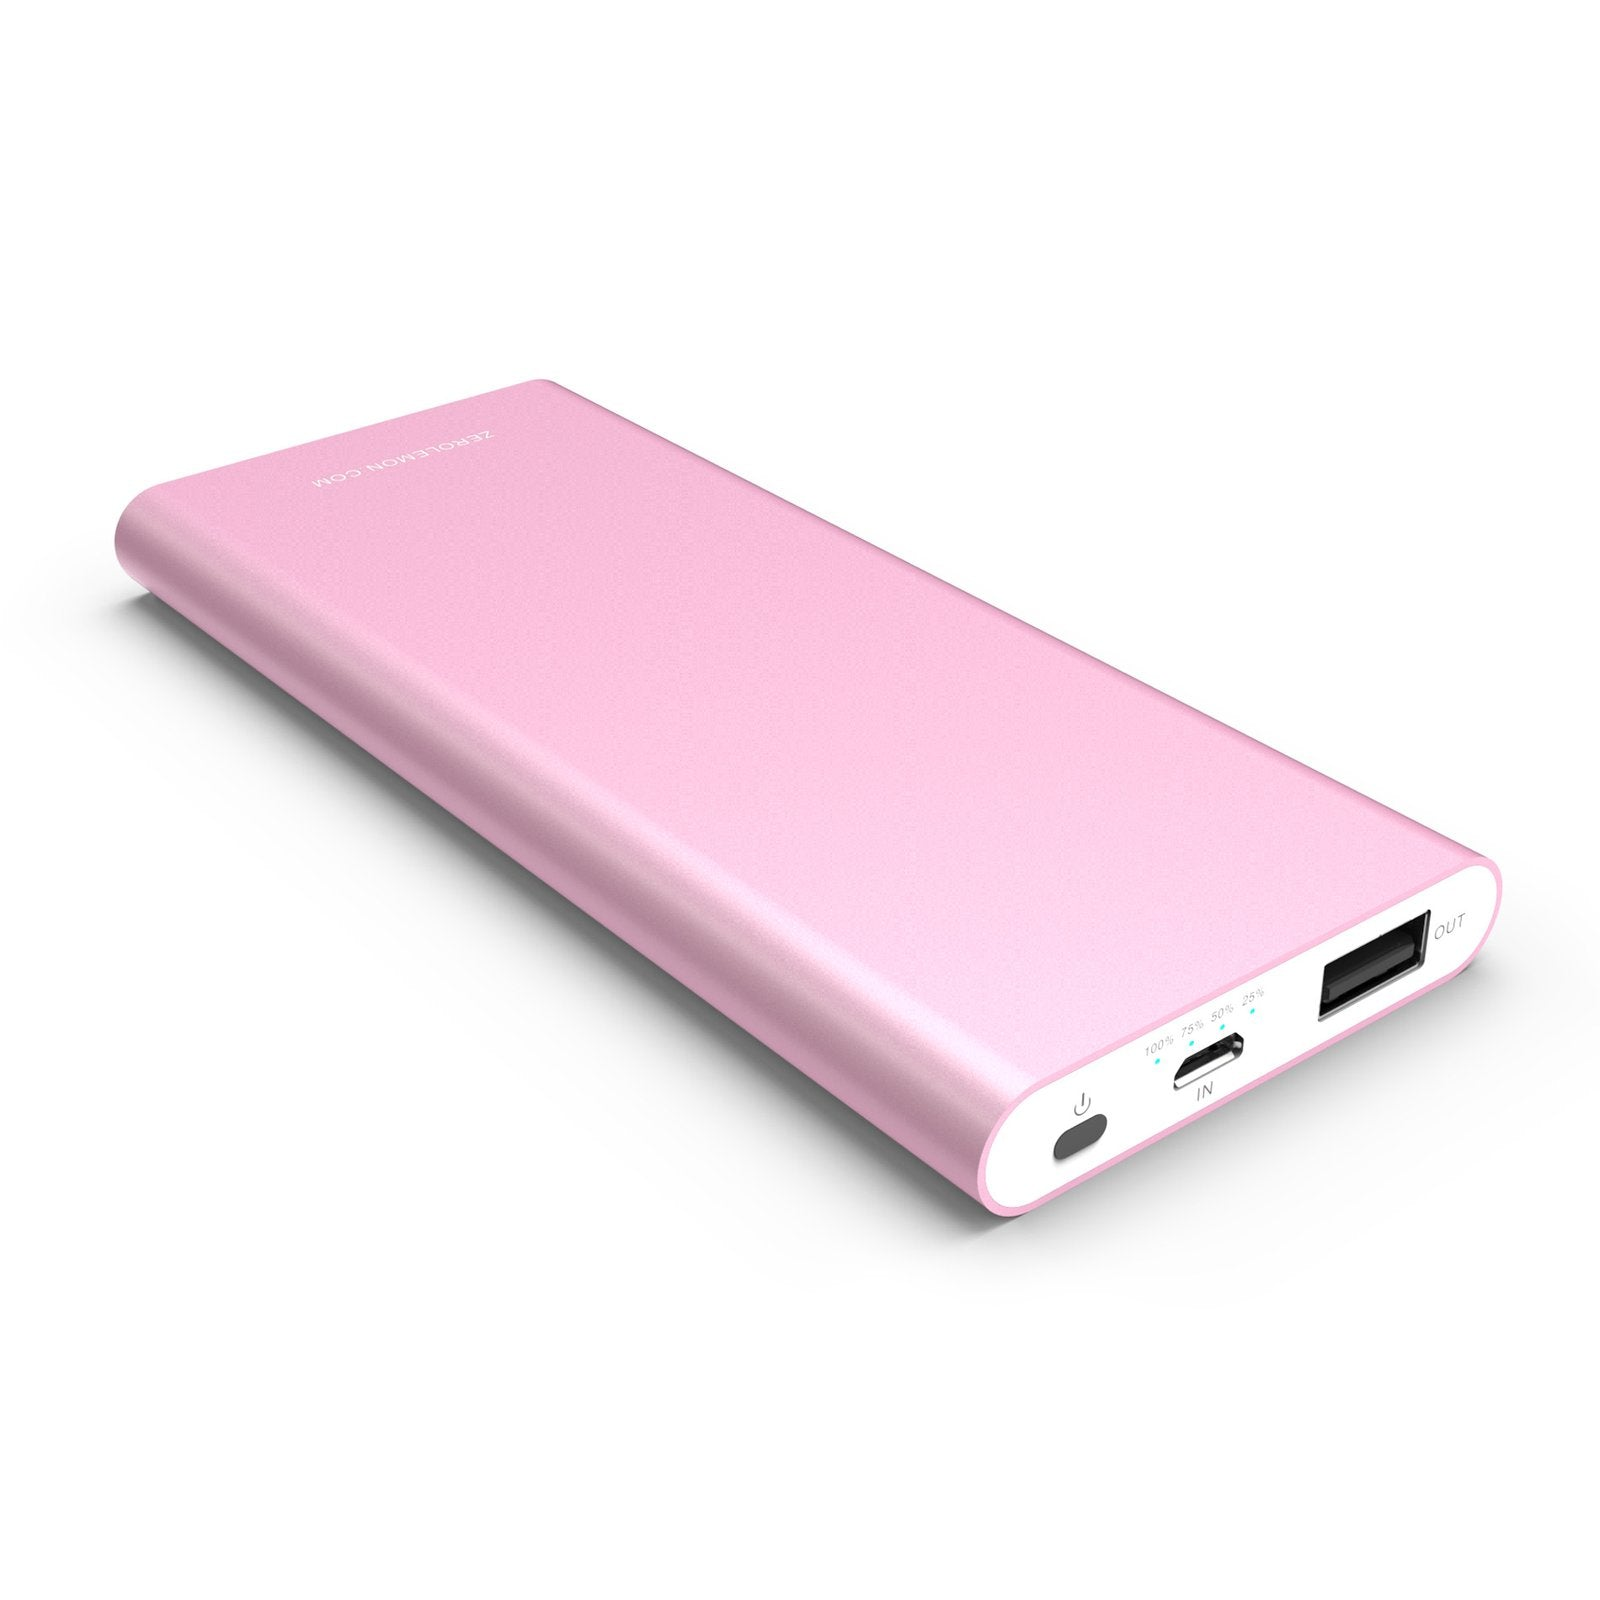 JuiceStick Portable Charger 9000mAh  Shipping to US Only  48c7853788